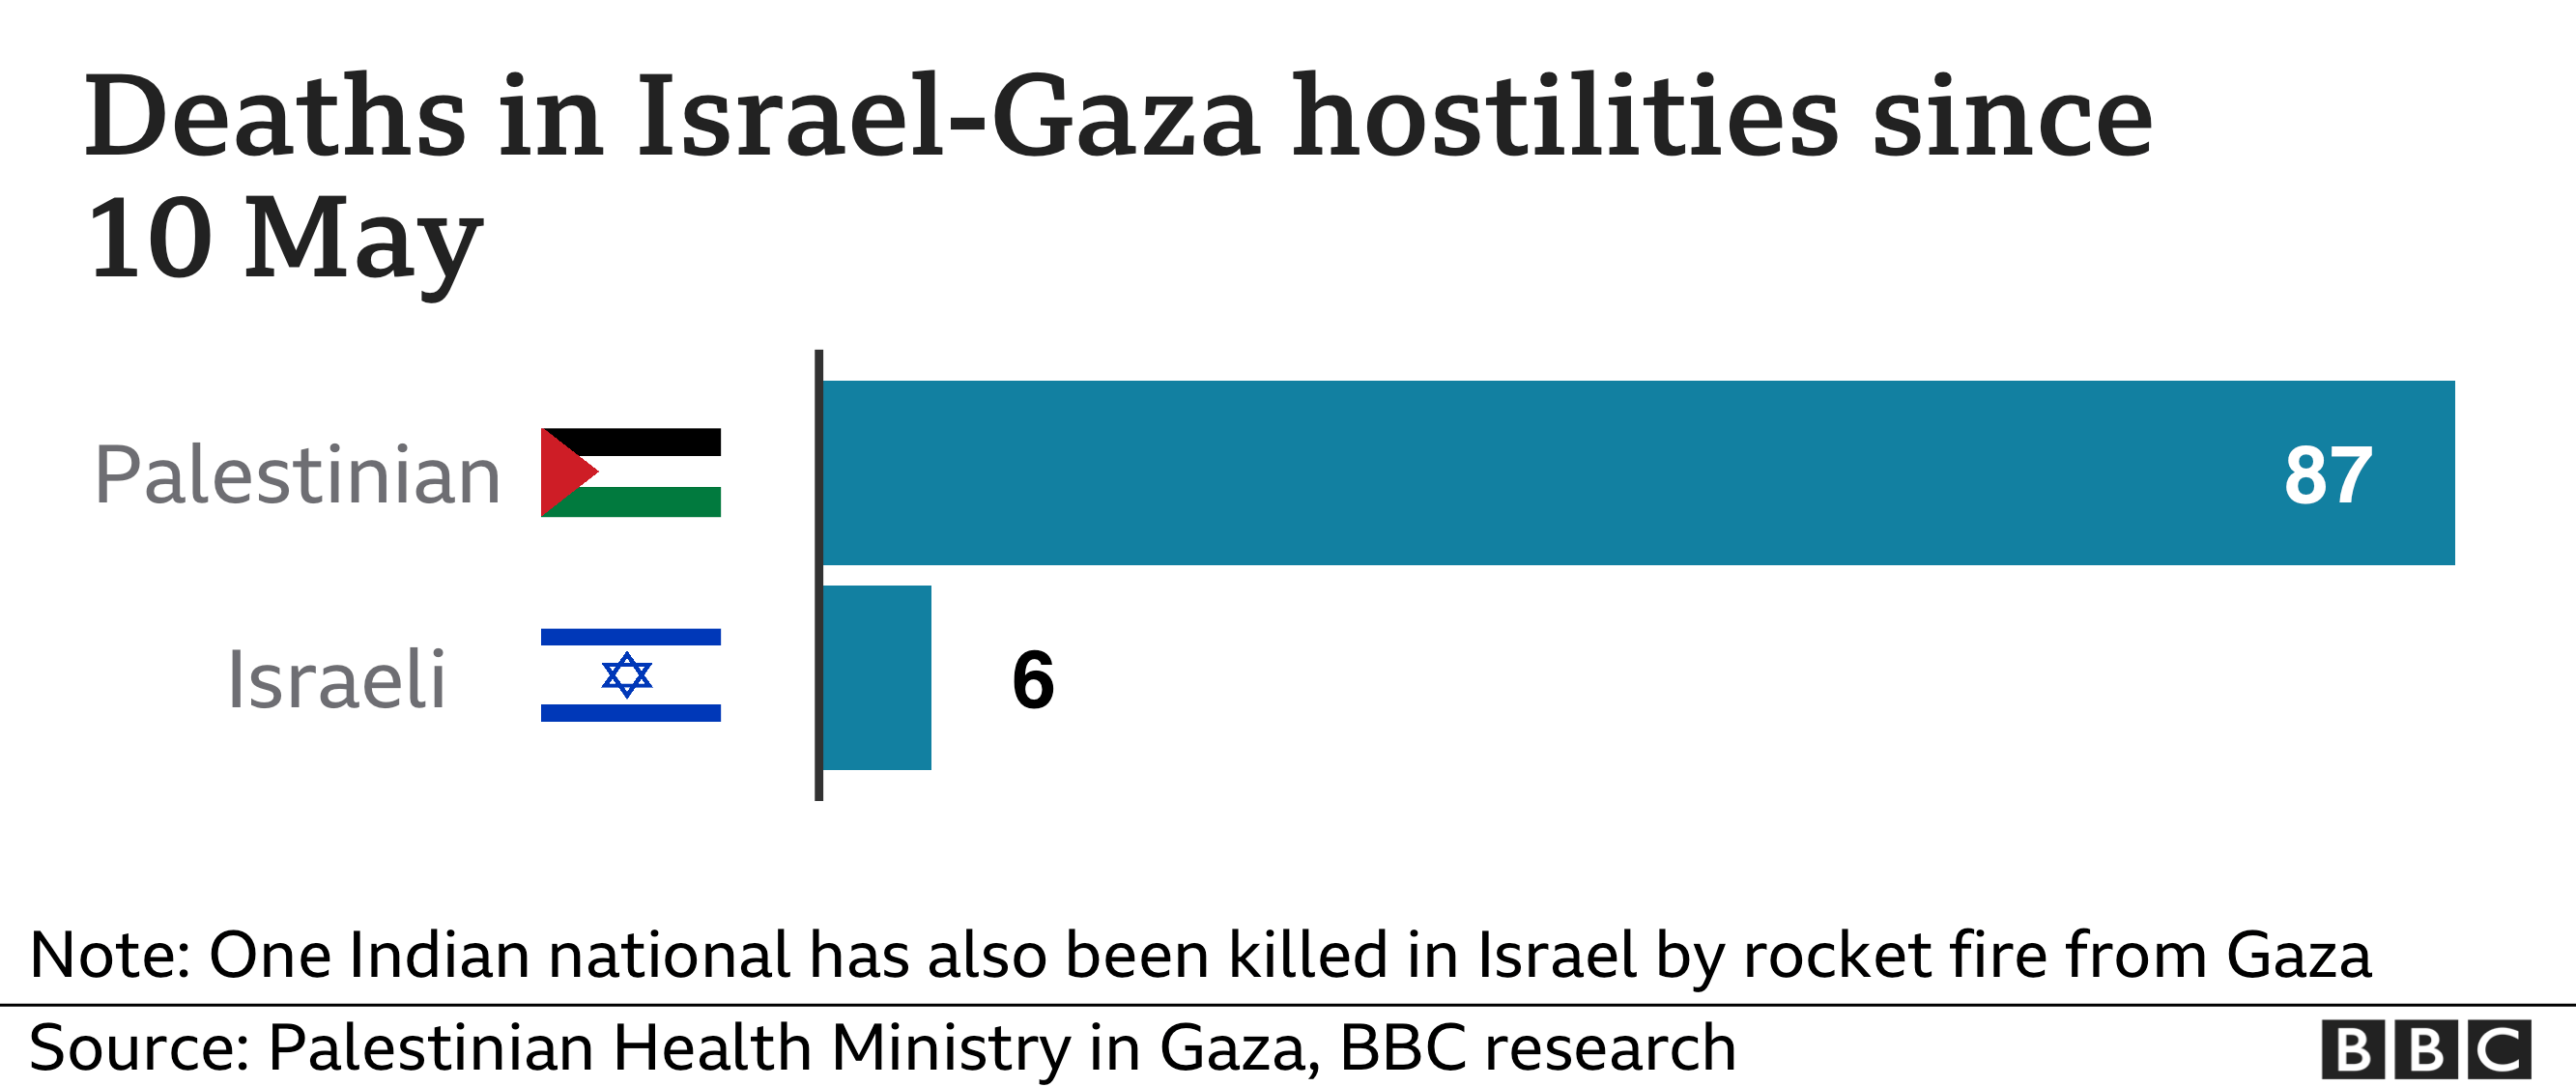 Image shows the death toll in the clashes